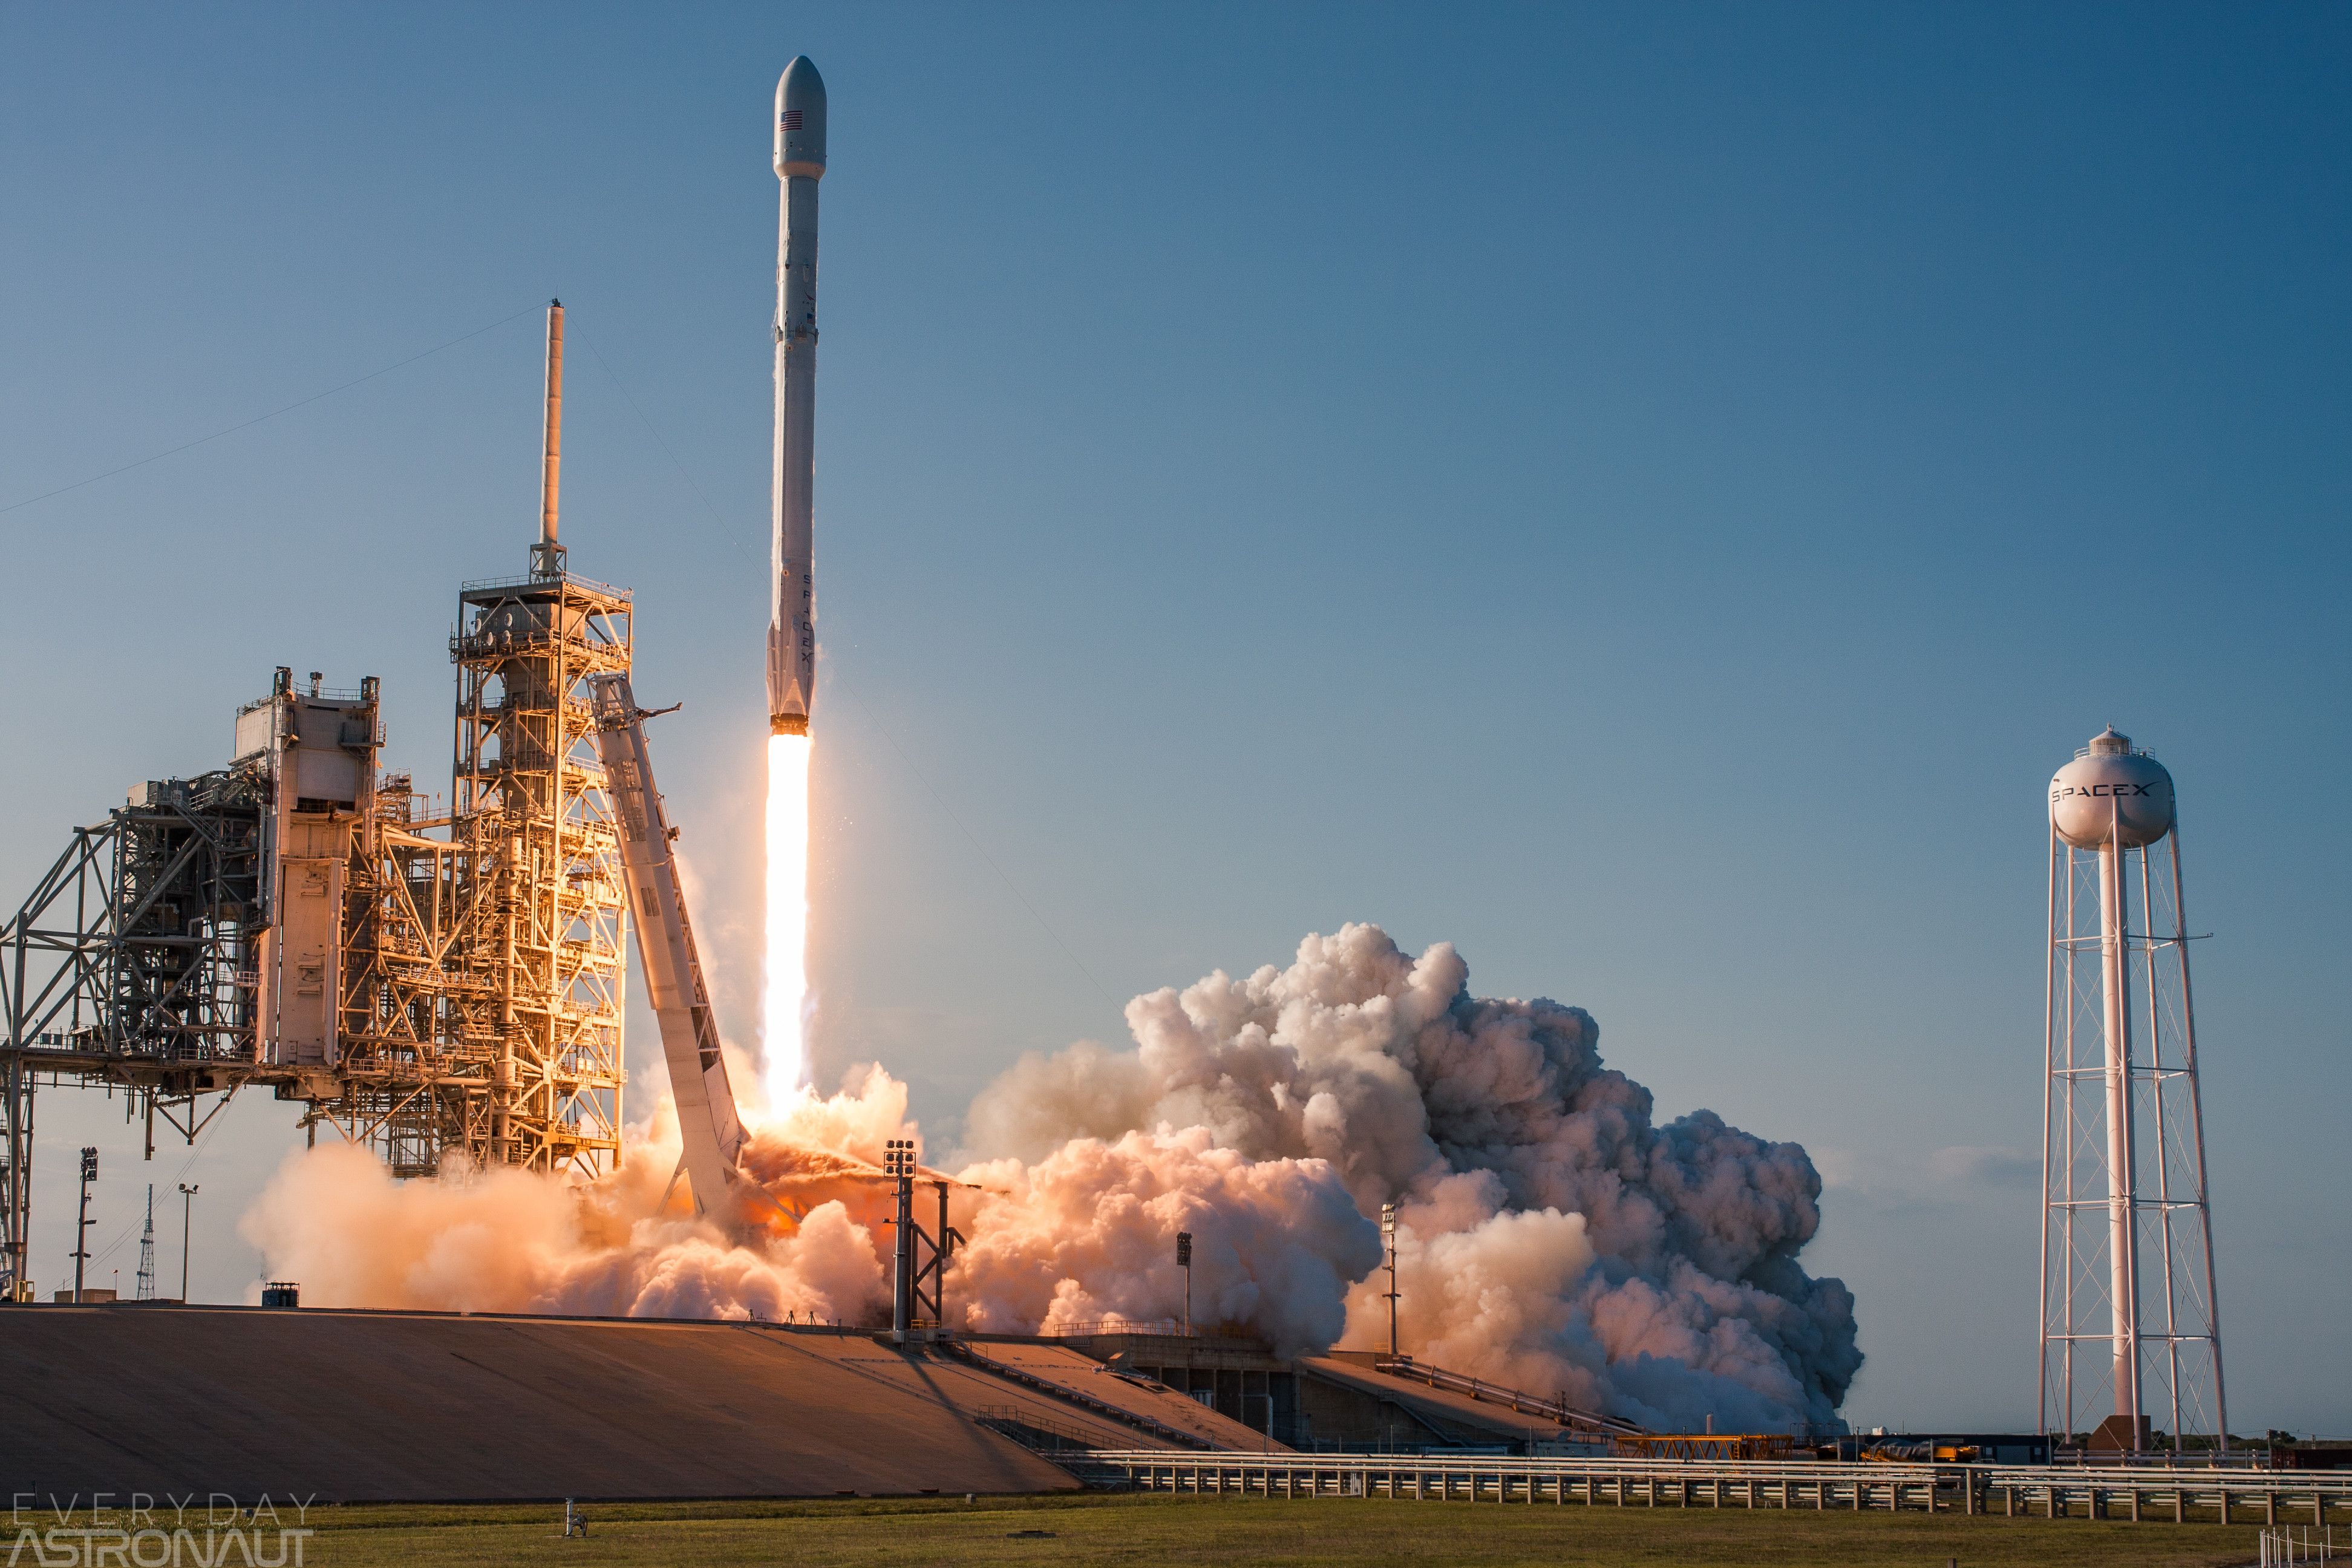 Wallpaper Spacex Wallpaper Collection 2880x1800 Spacex Wallpaper Space Science And Nature